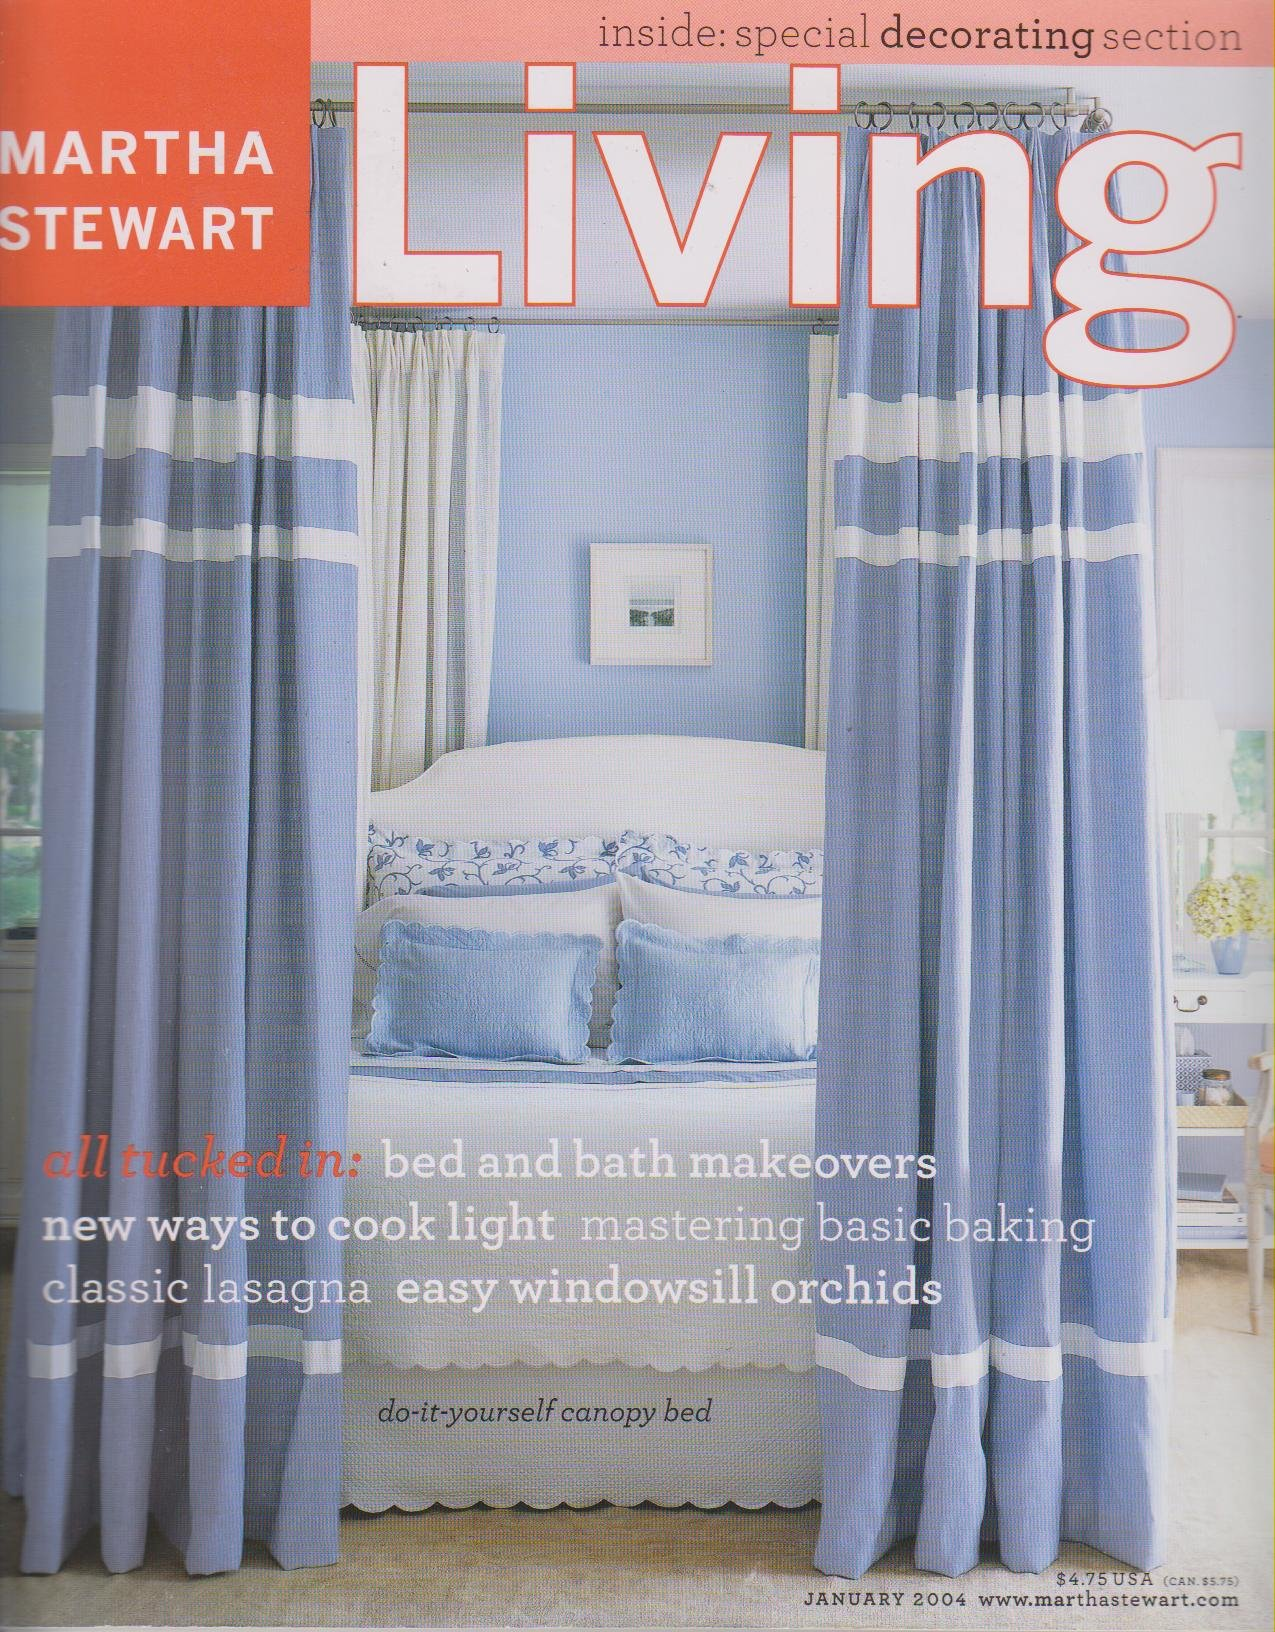 Download Martha Stewart Living Magazine January 2004 - Bed and Bath Makeovers pdf